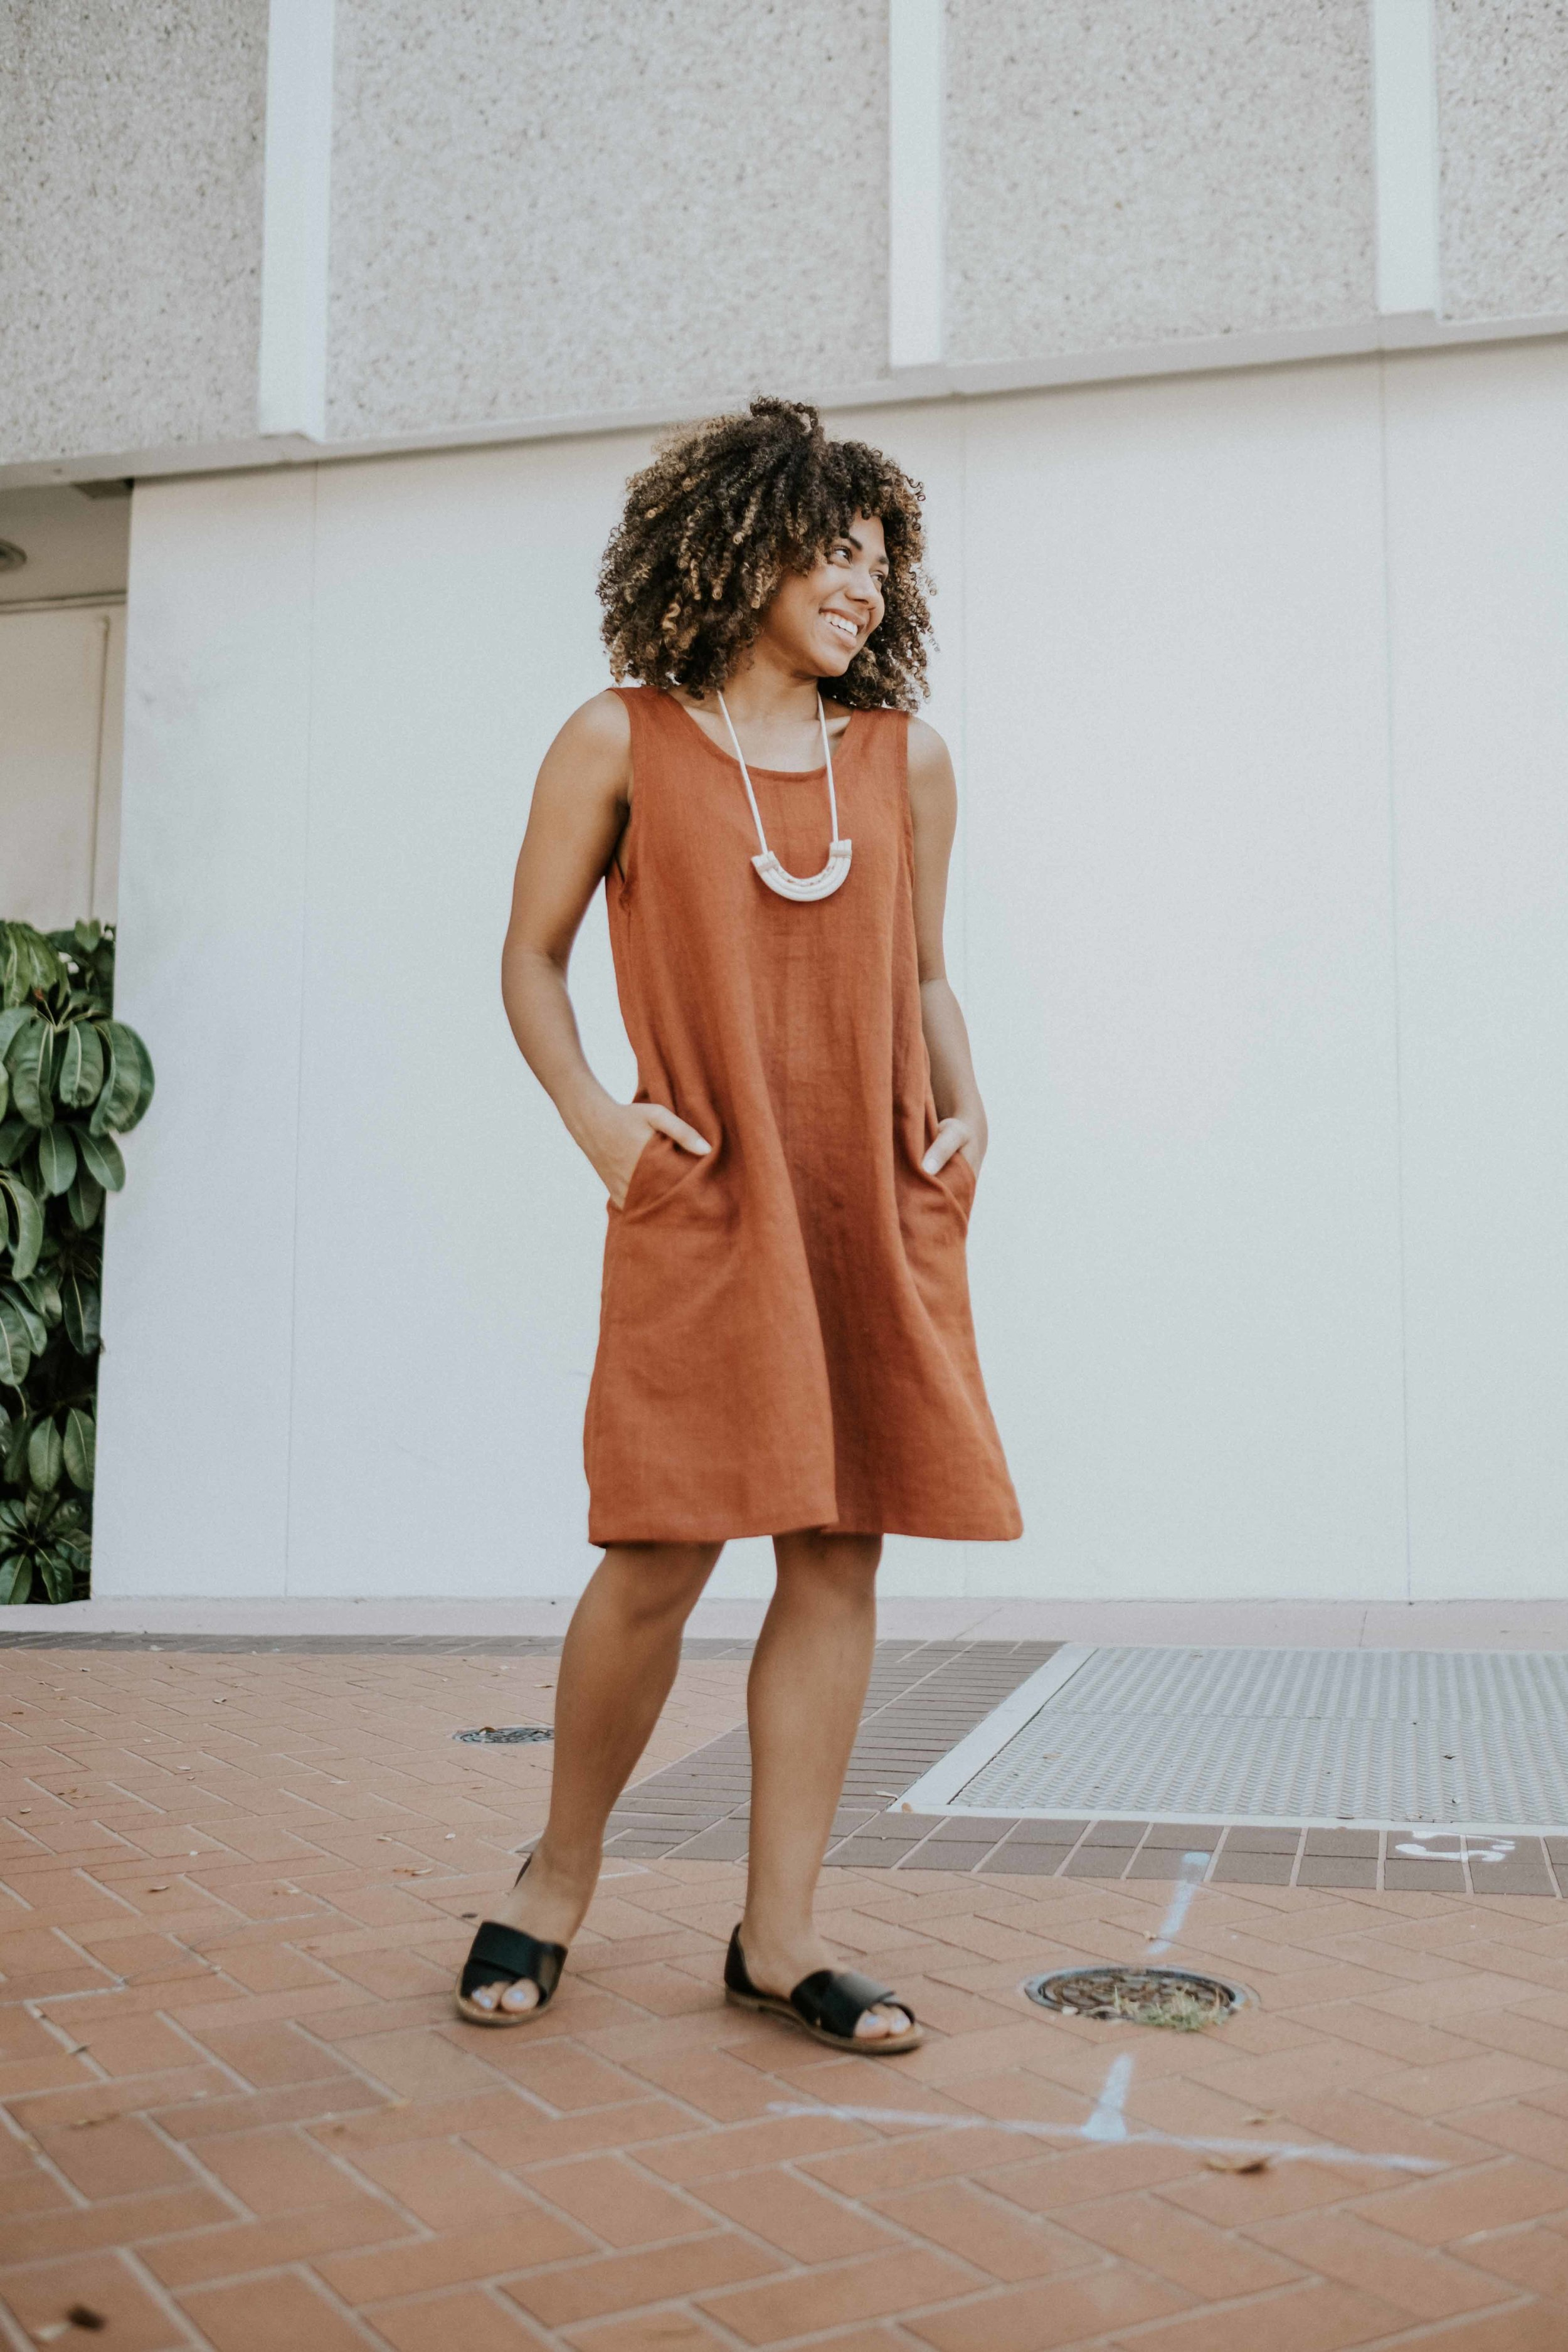 Solie modeling the Elinor Dress Scoop Back Dress featured in rust linen